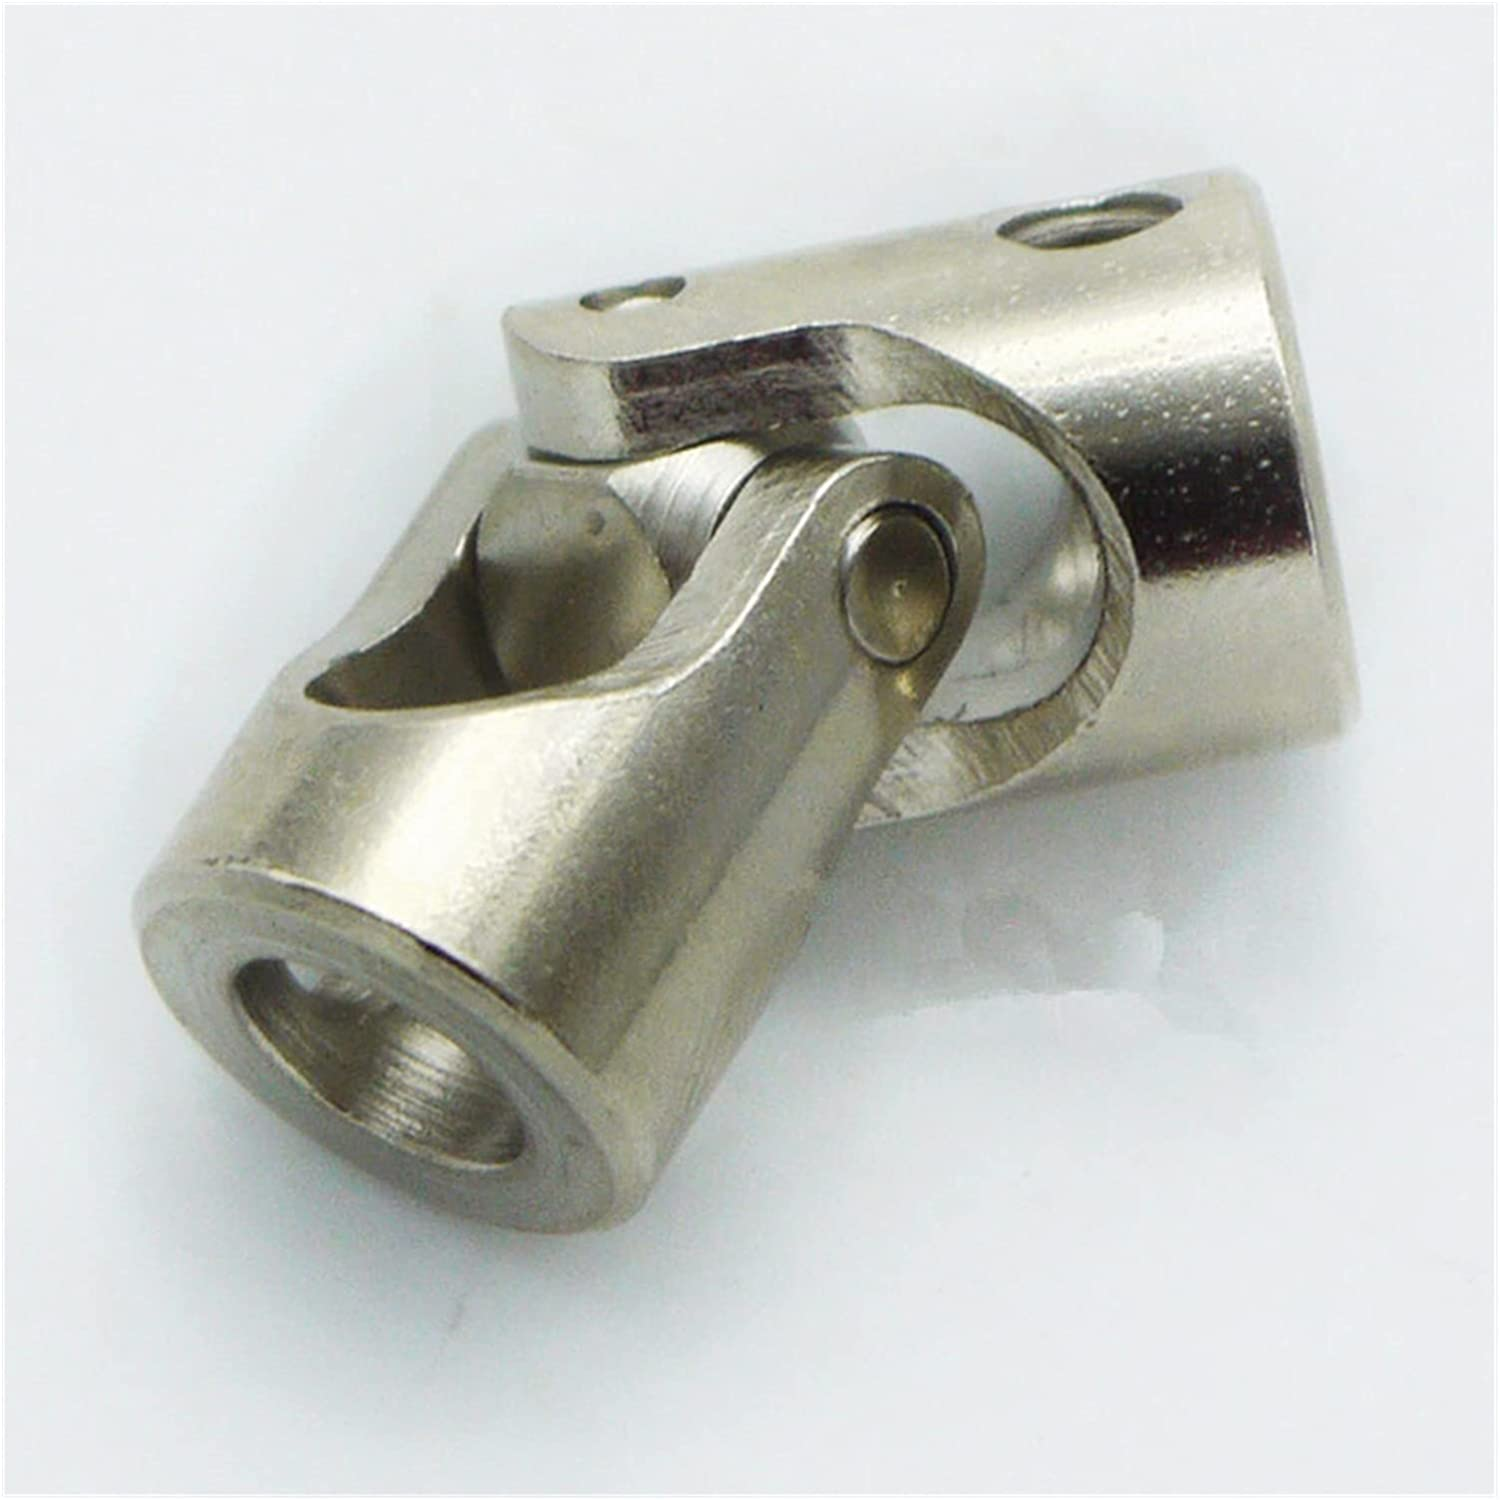 Basic A surprise price is realized Cellphone Cases CNC Parts Joint Max 82% OFF Coupler Universal Metal Co